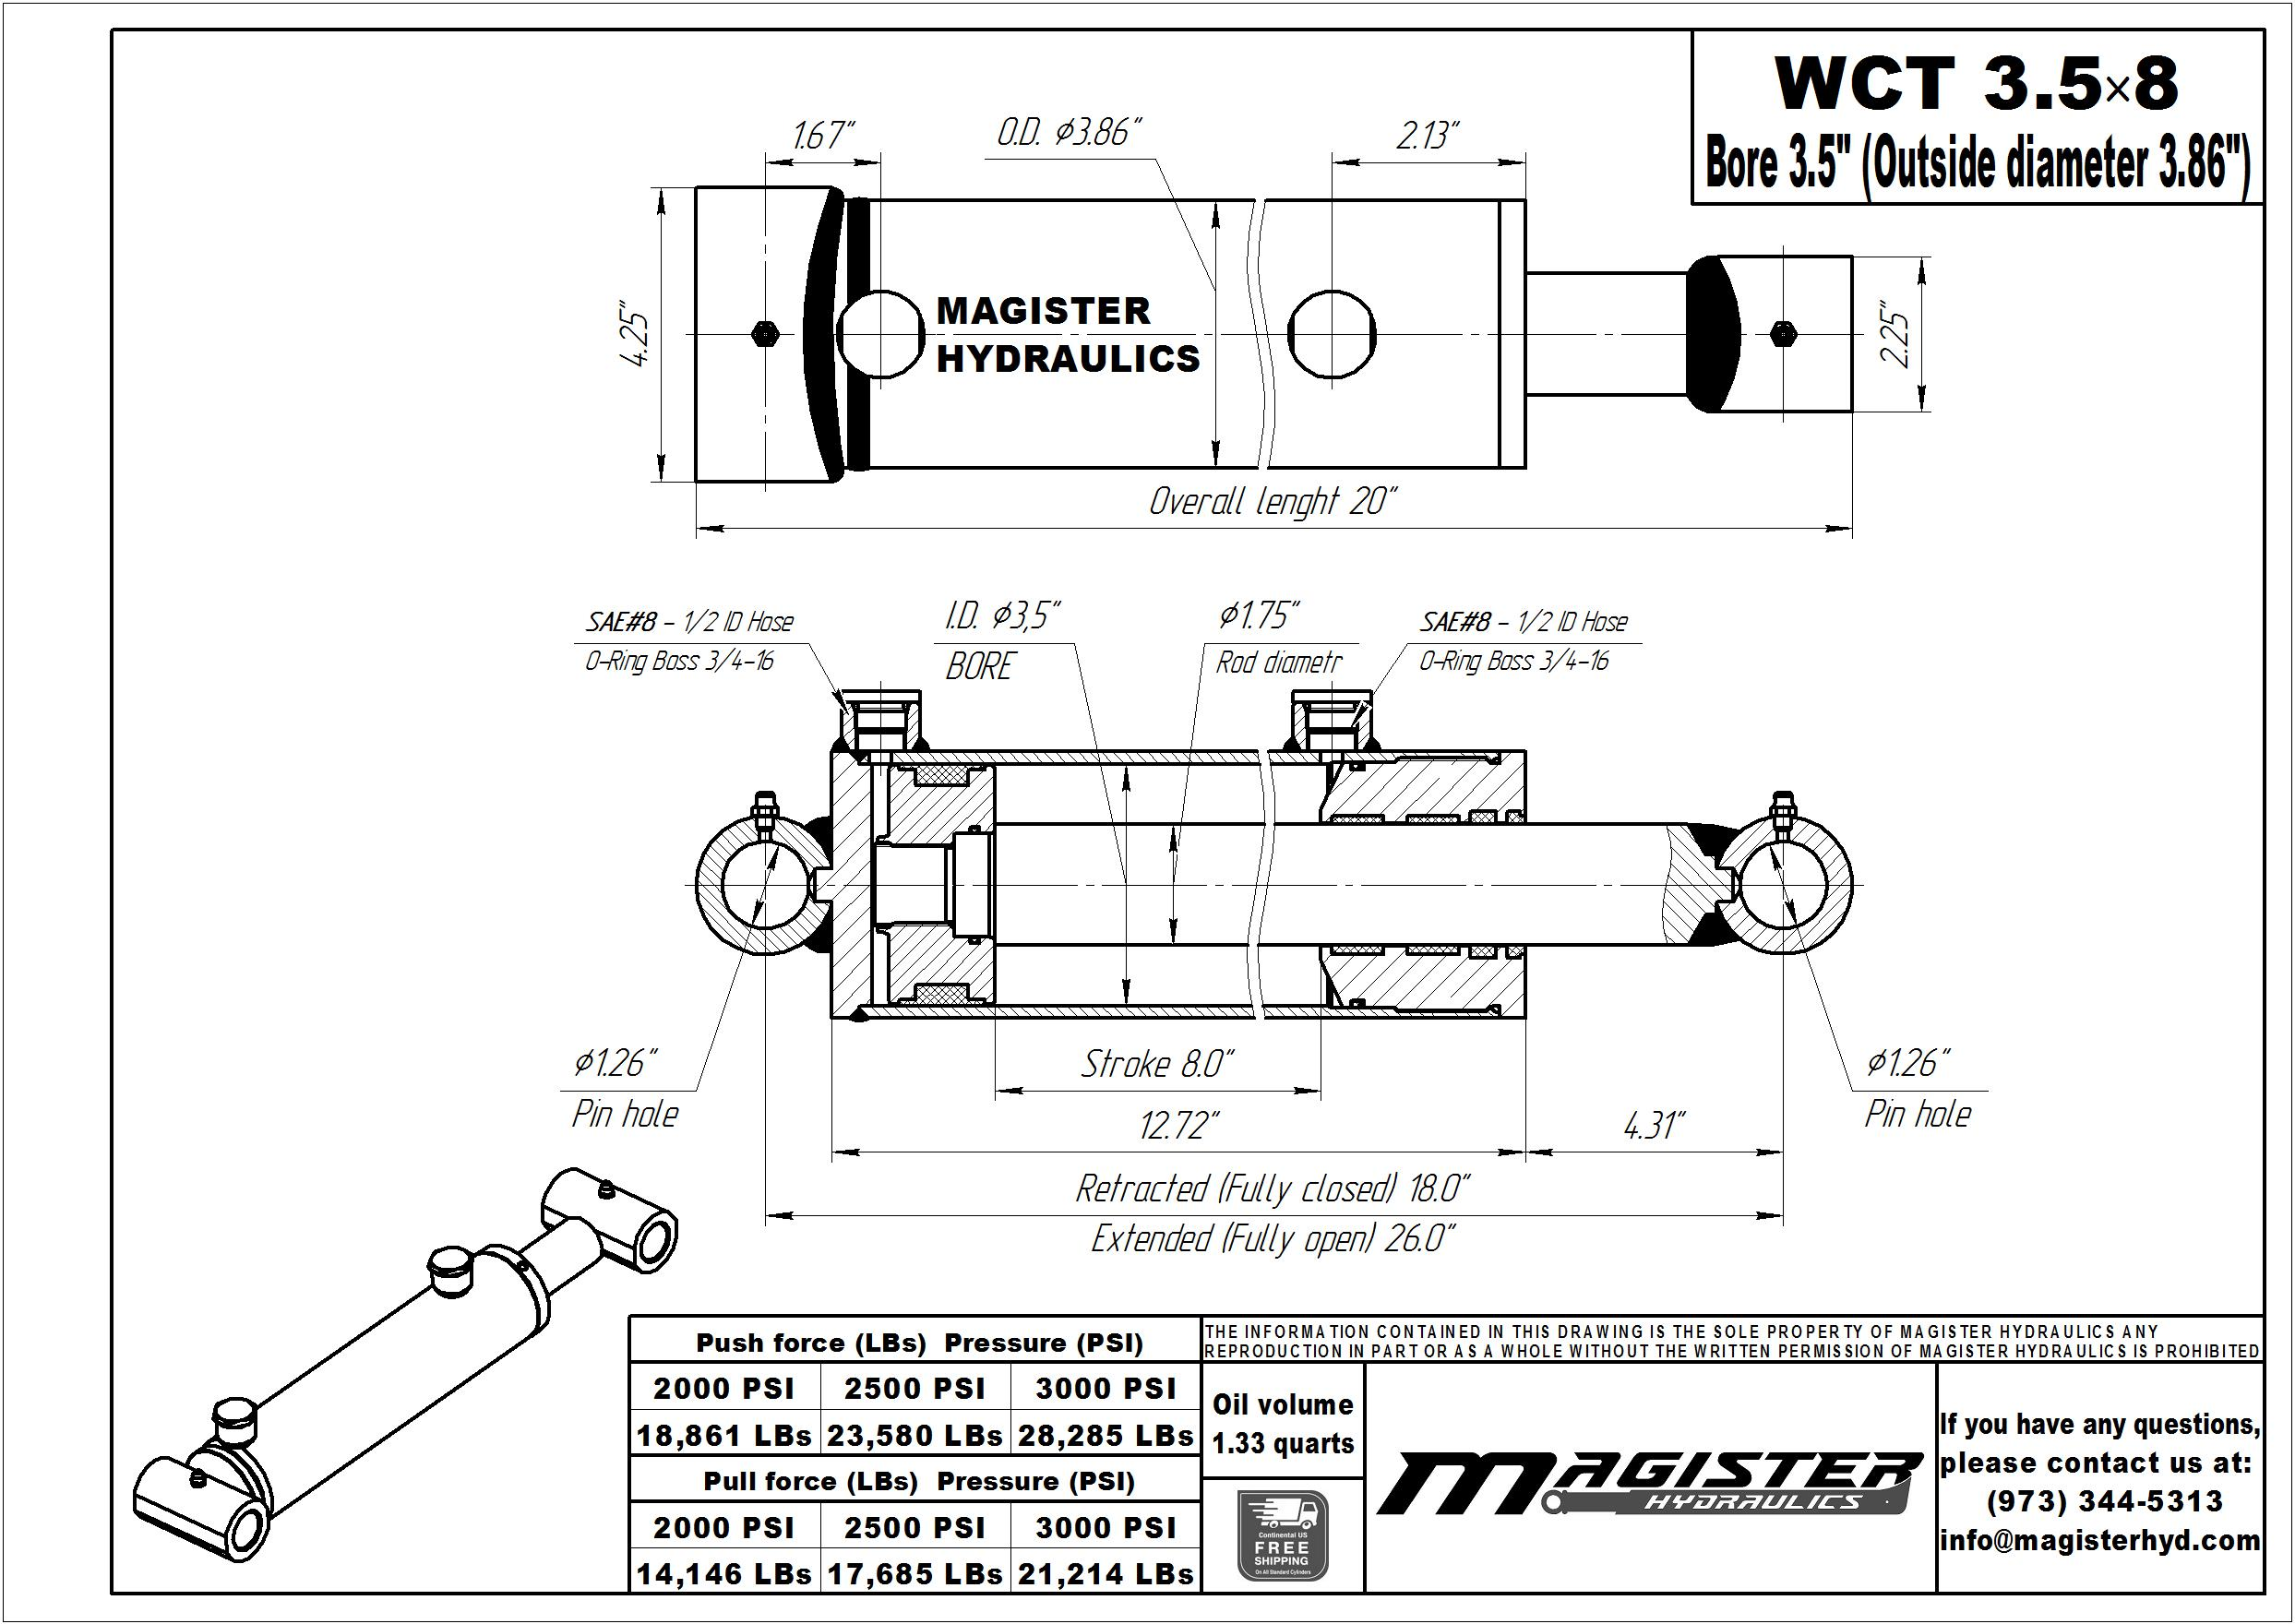 3.5 bore x 8 stroke hydraulic cylinder, welded cross tube double acting cylinder | Magister Hydraulics